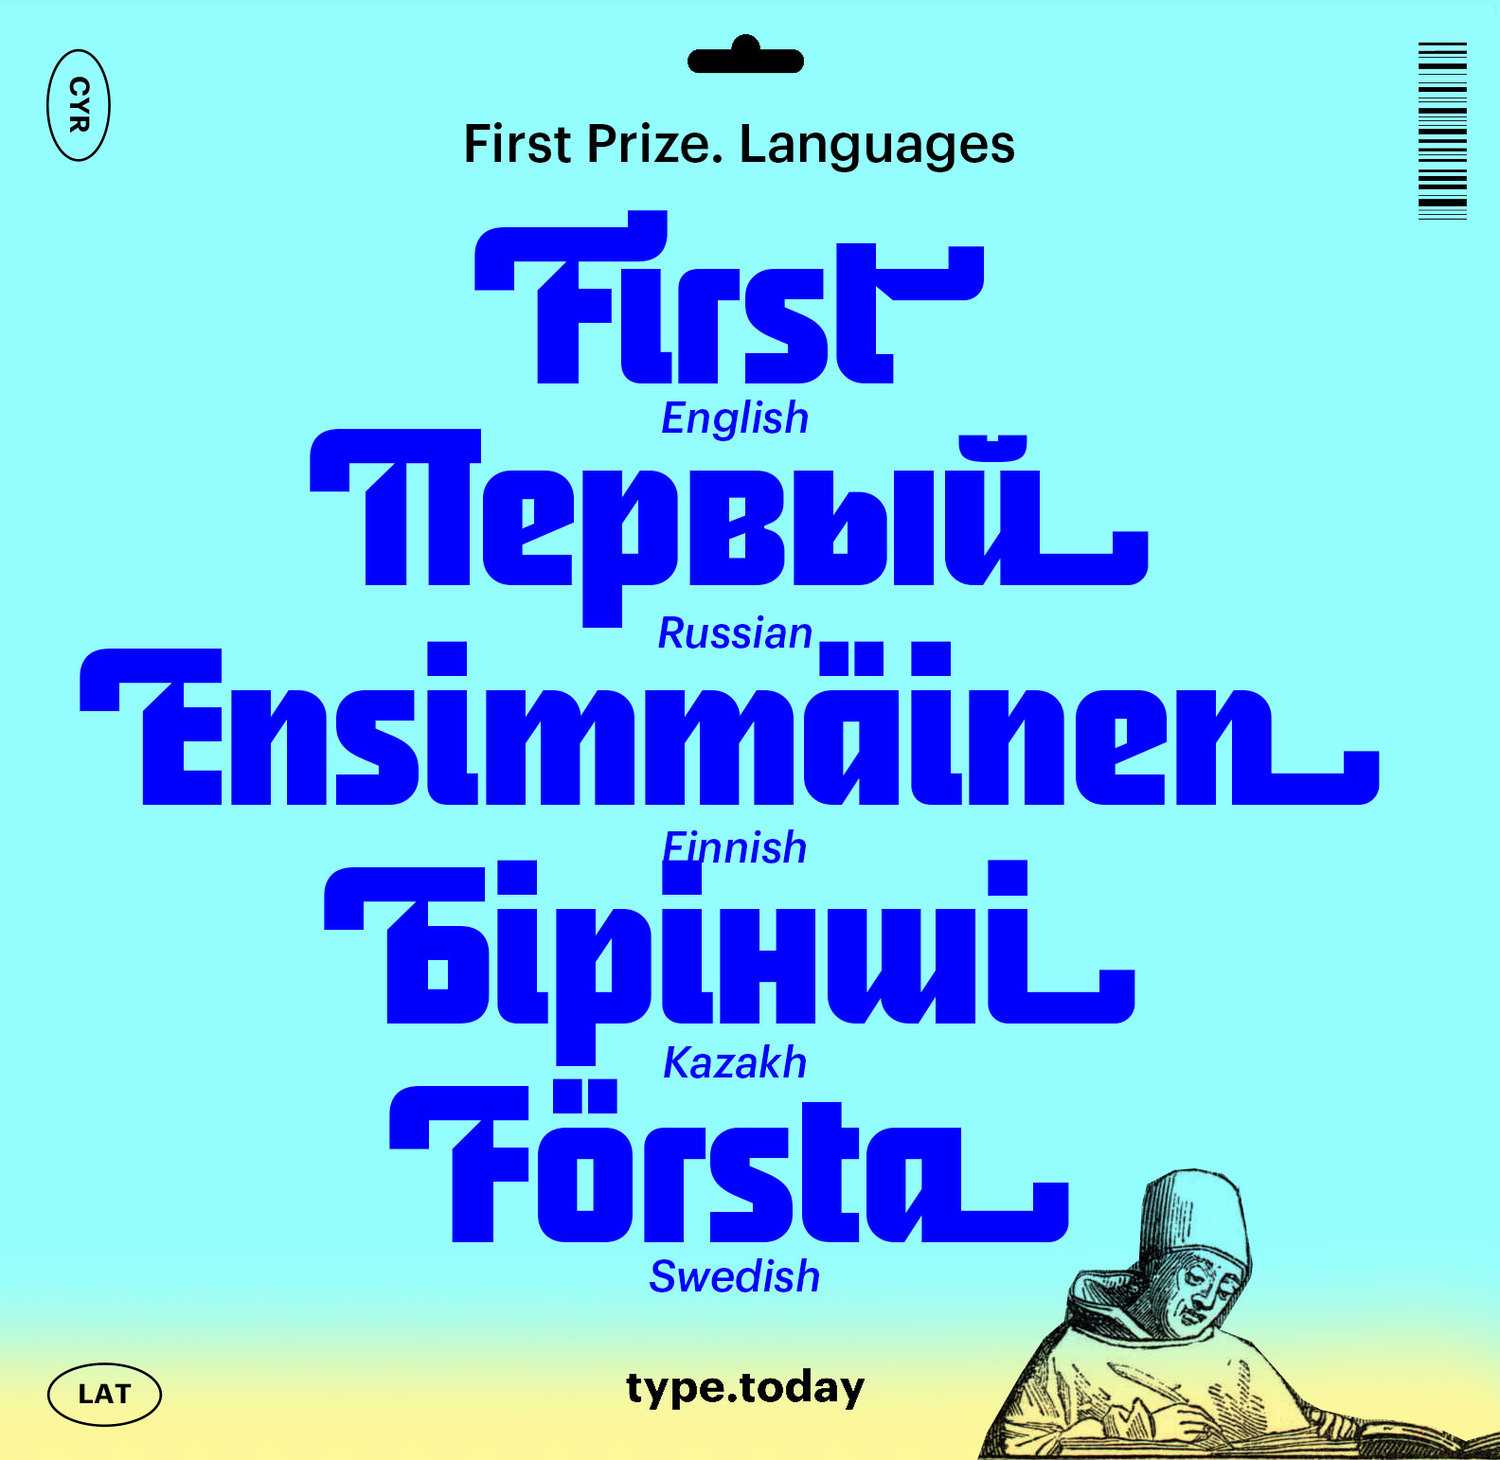 TT_FirstPrizeLanguages